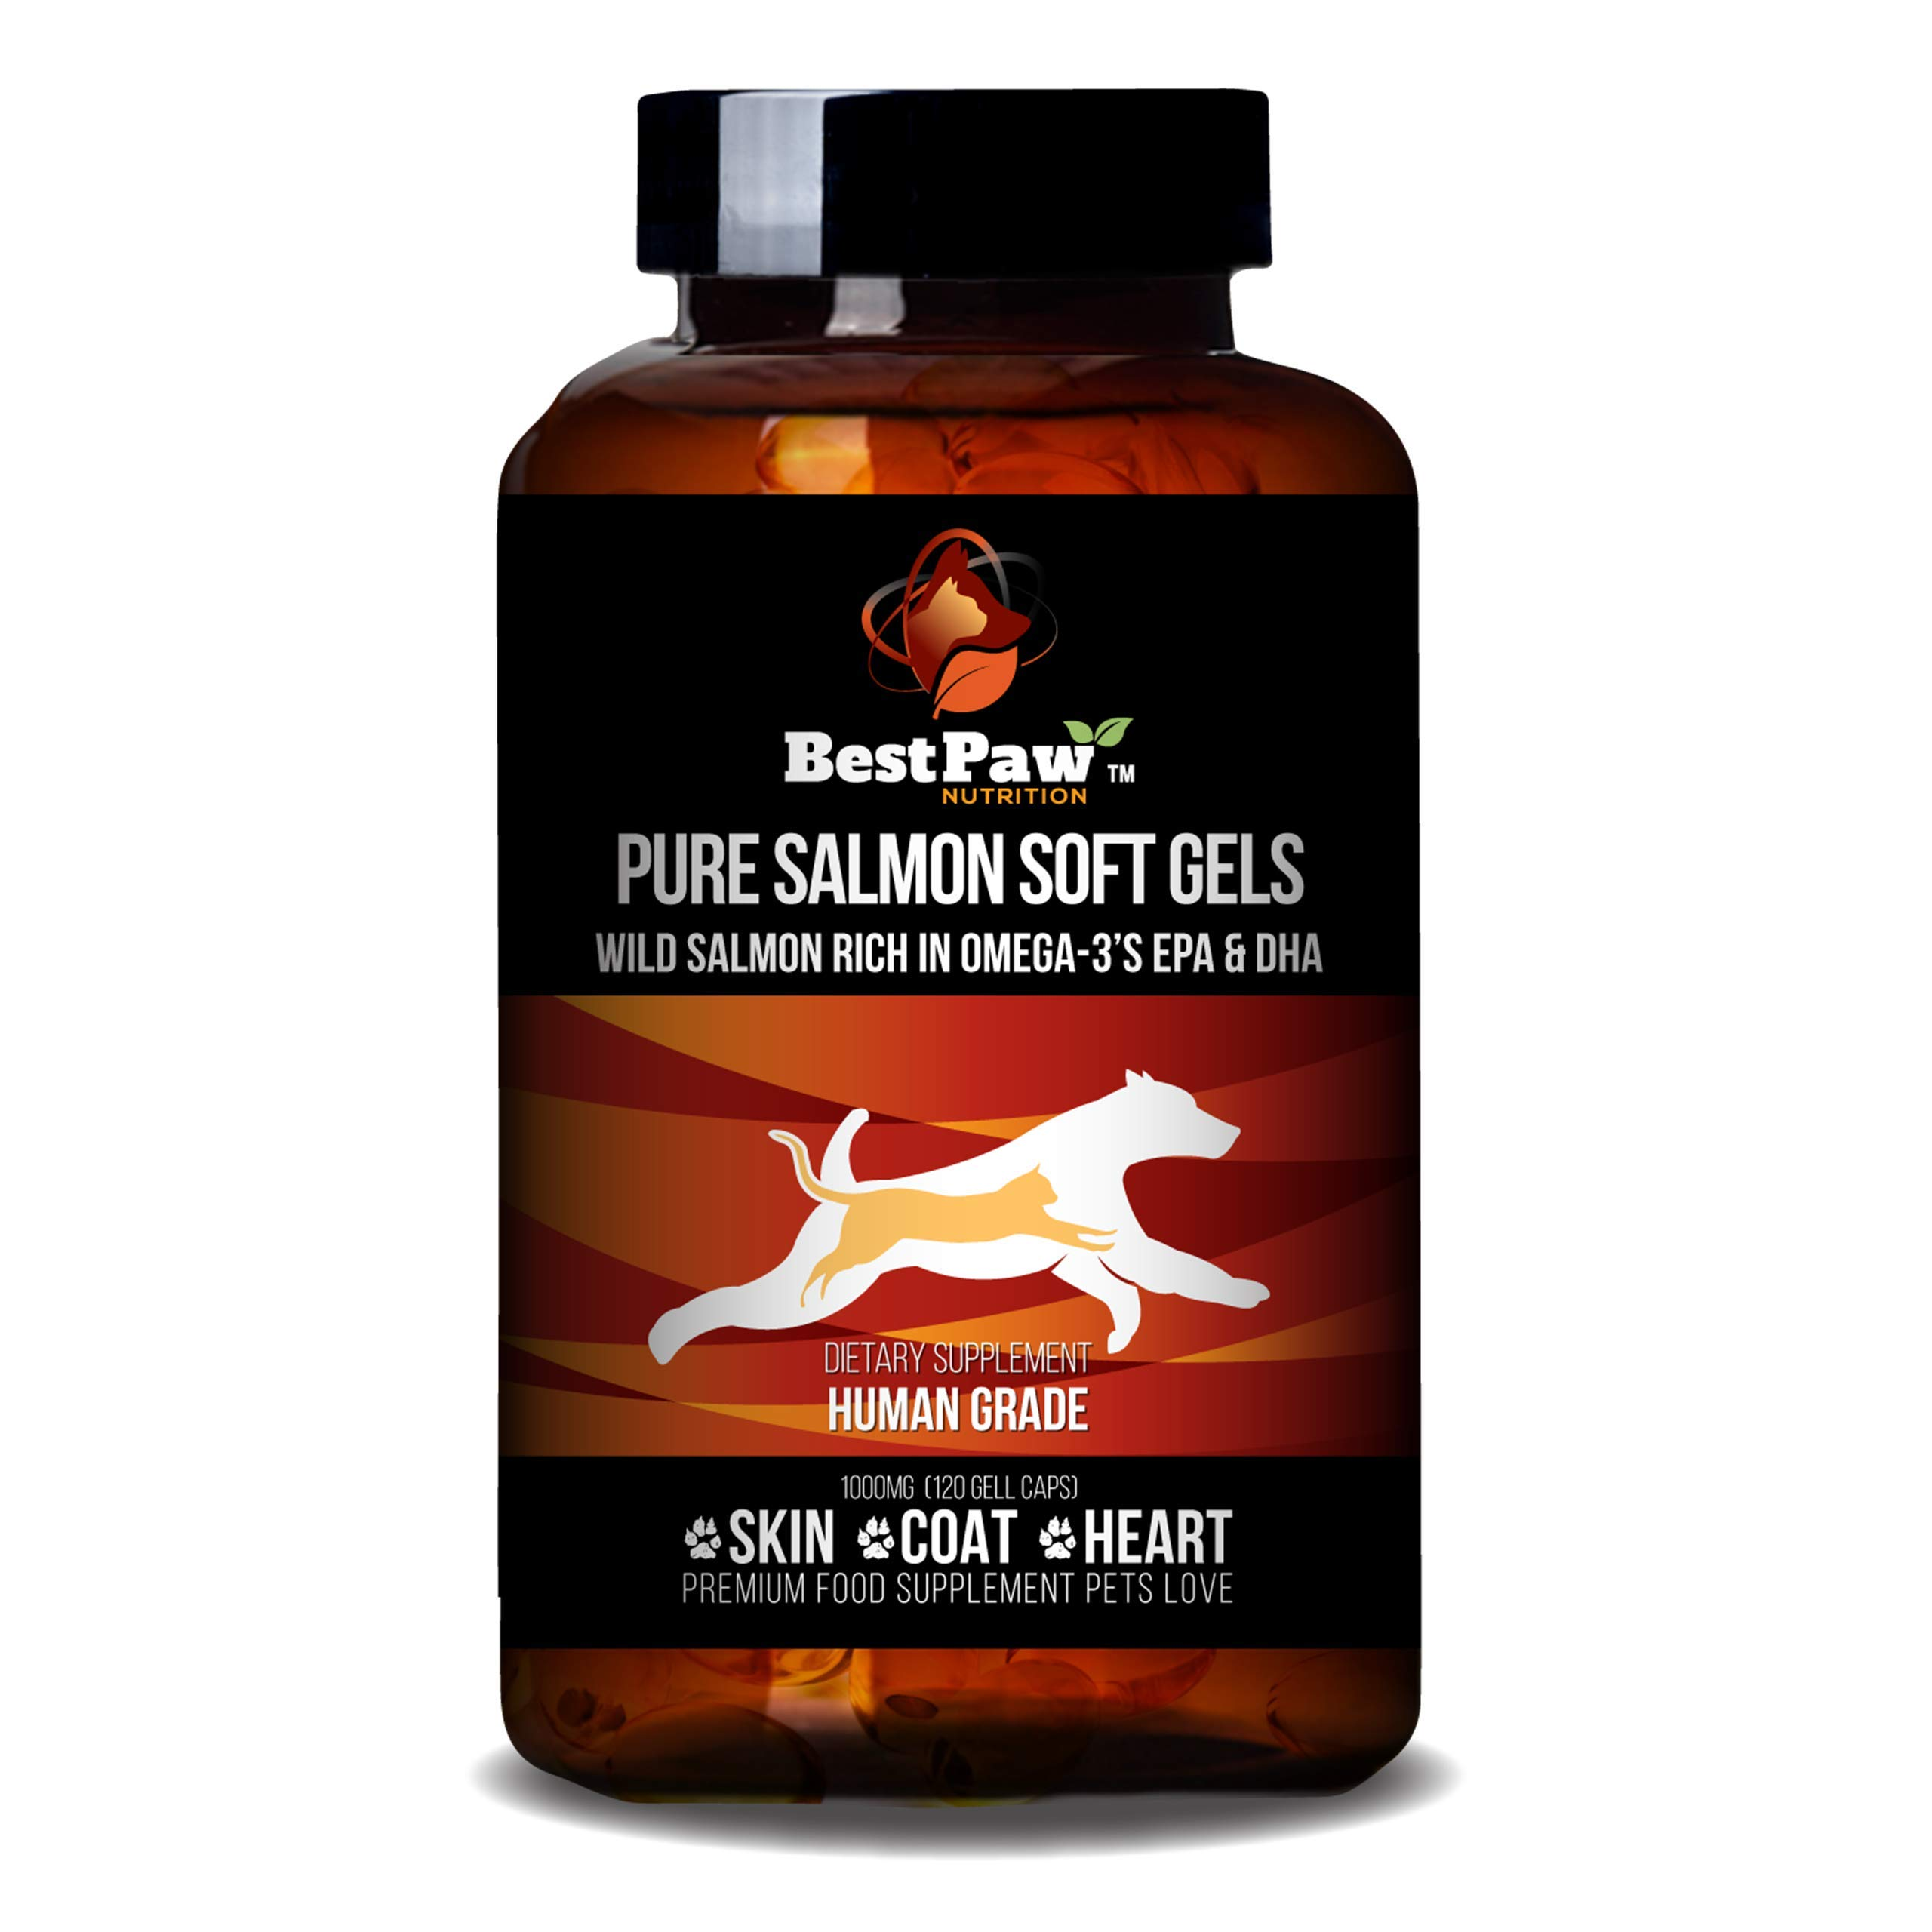 Best Paw Nutrition Pure Wild Alaskan Salmon Oil for Dogs & Cats Allergy, Dry Itchy Skin, Hotspots, Joint Pain Relief by Best Paw Nutrition